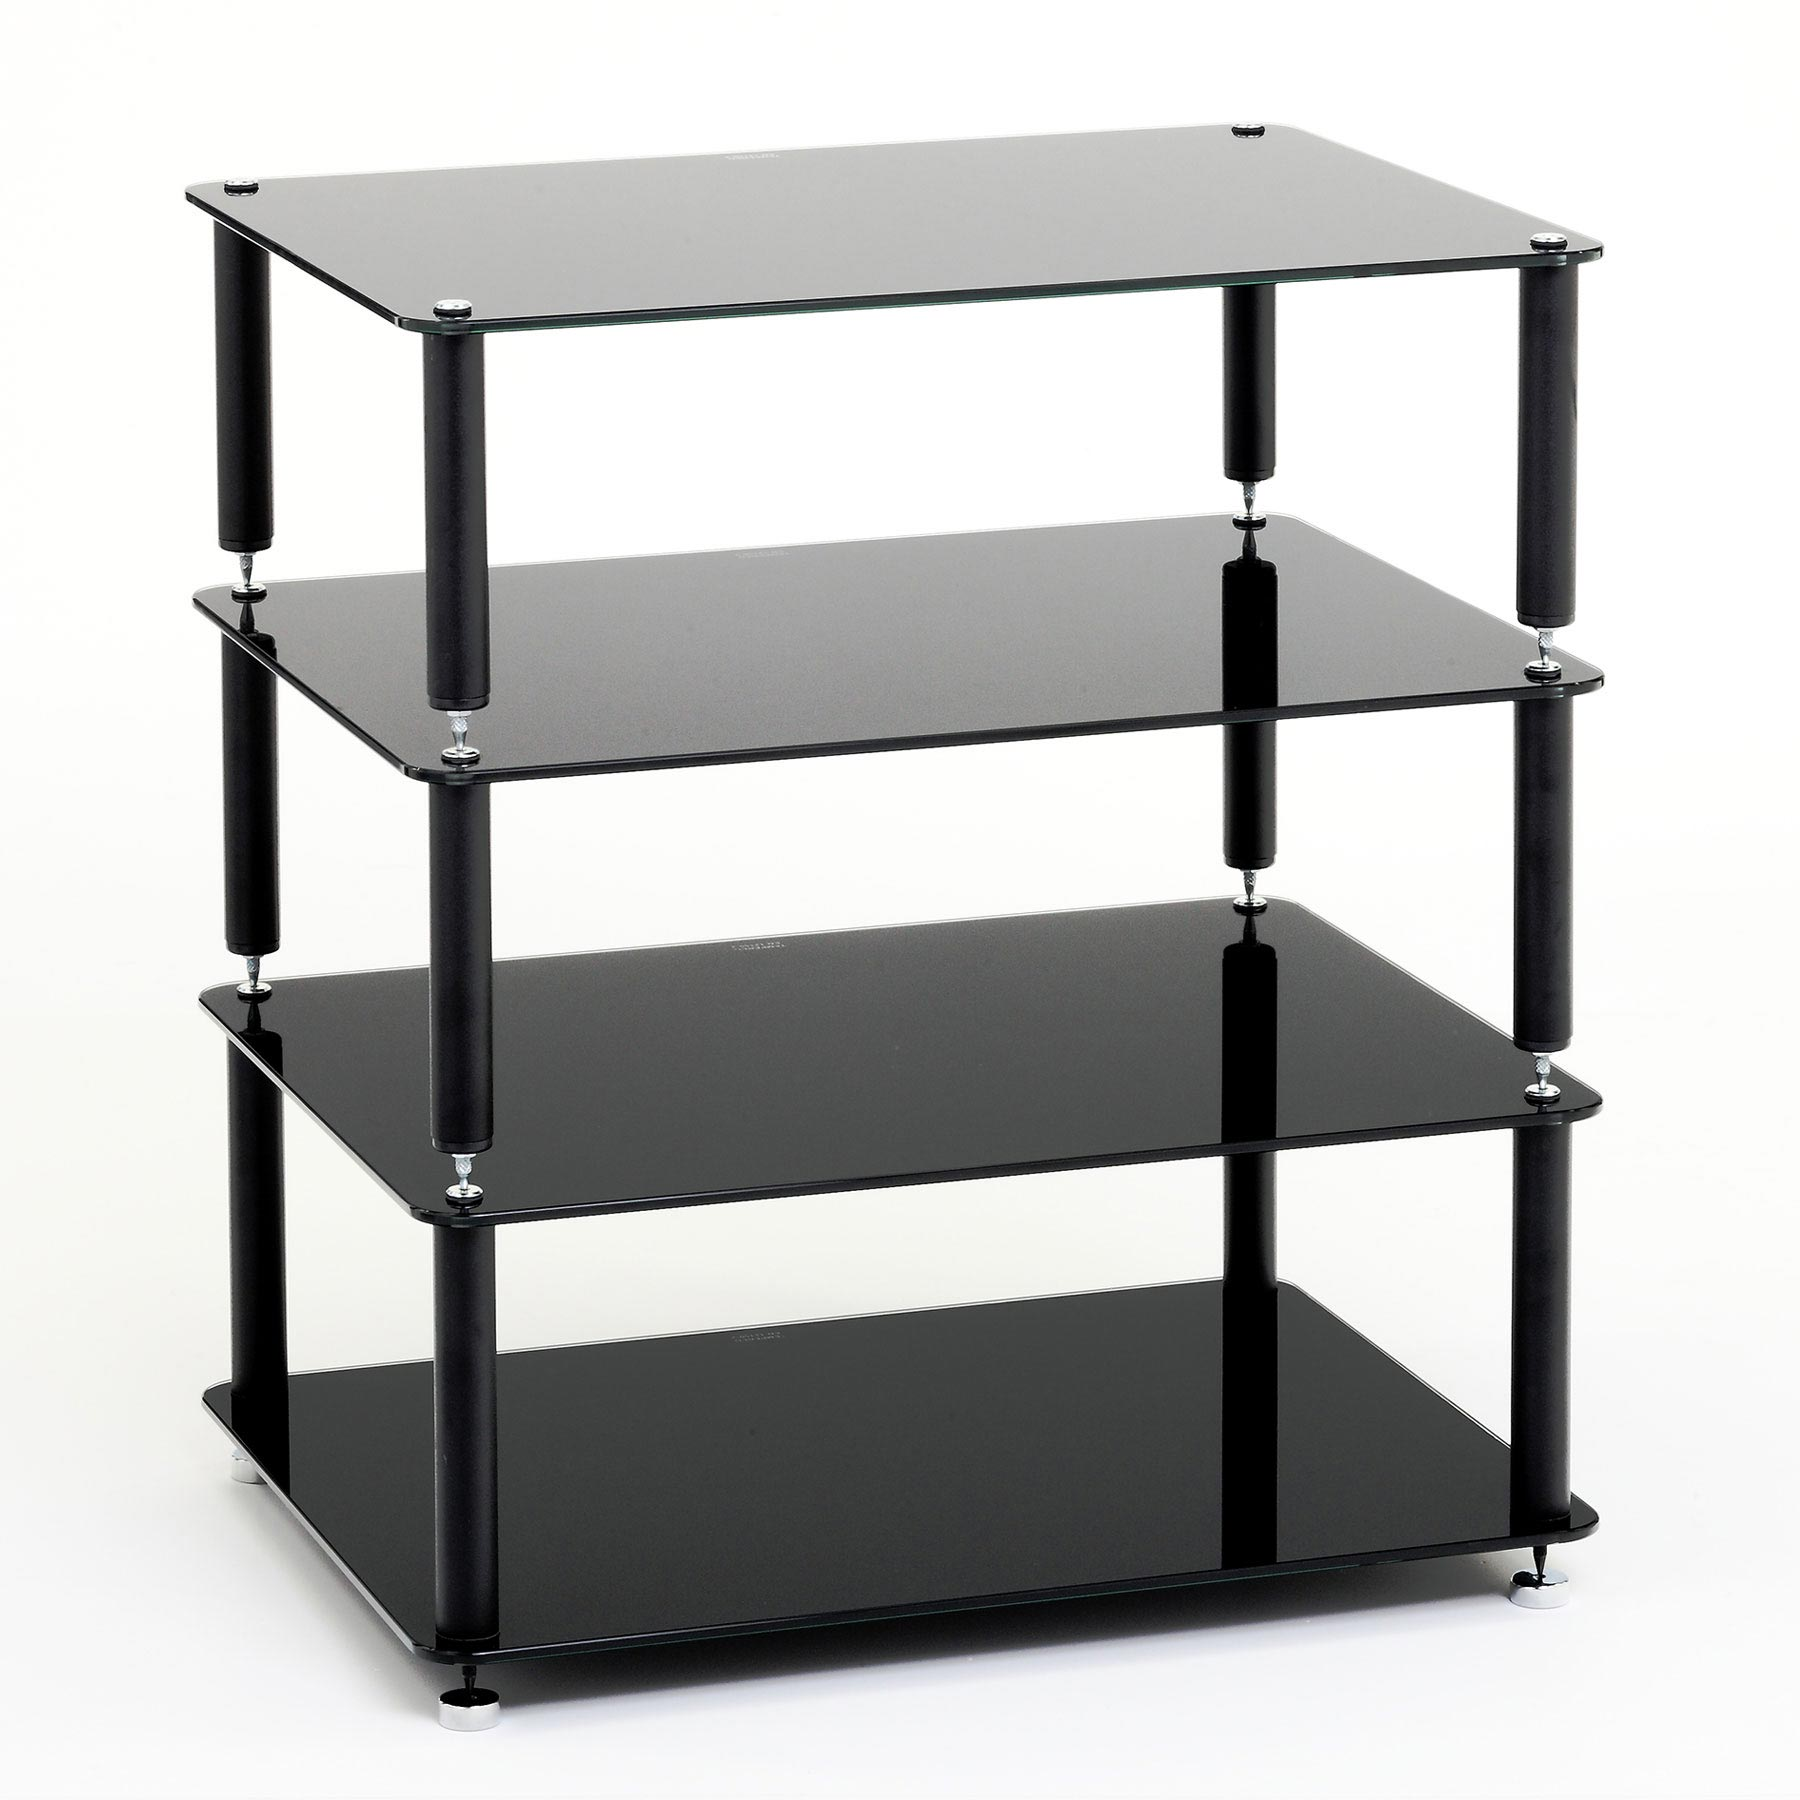 custom design hifi rack discrete 4 schwarz bellevue audio gmbh. Black Bedroom Furniture Sets. Home Design Ideas